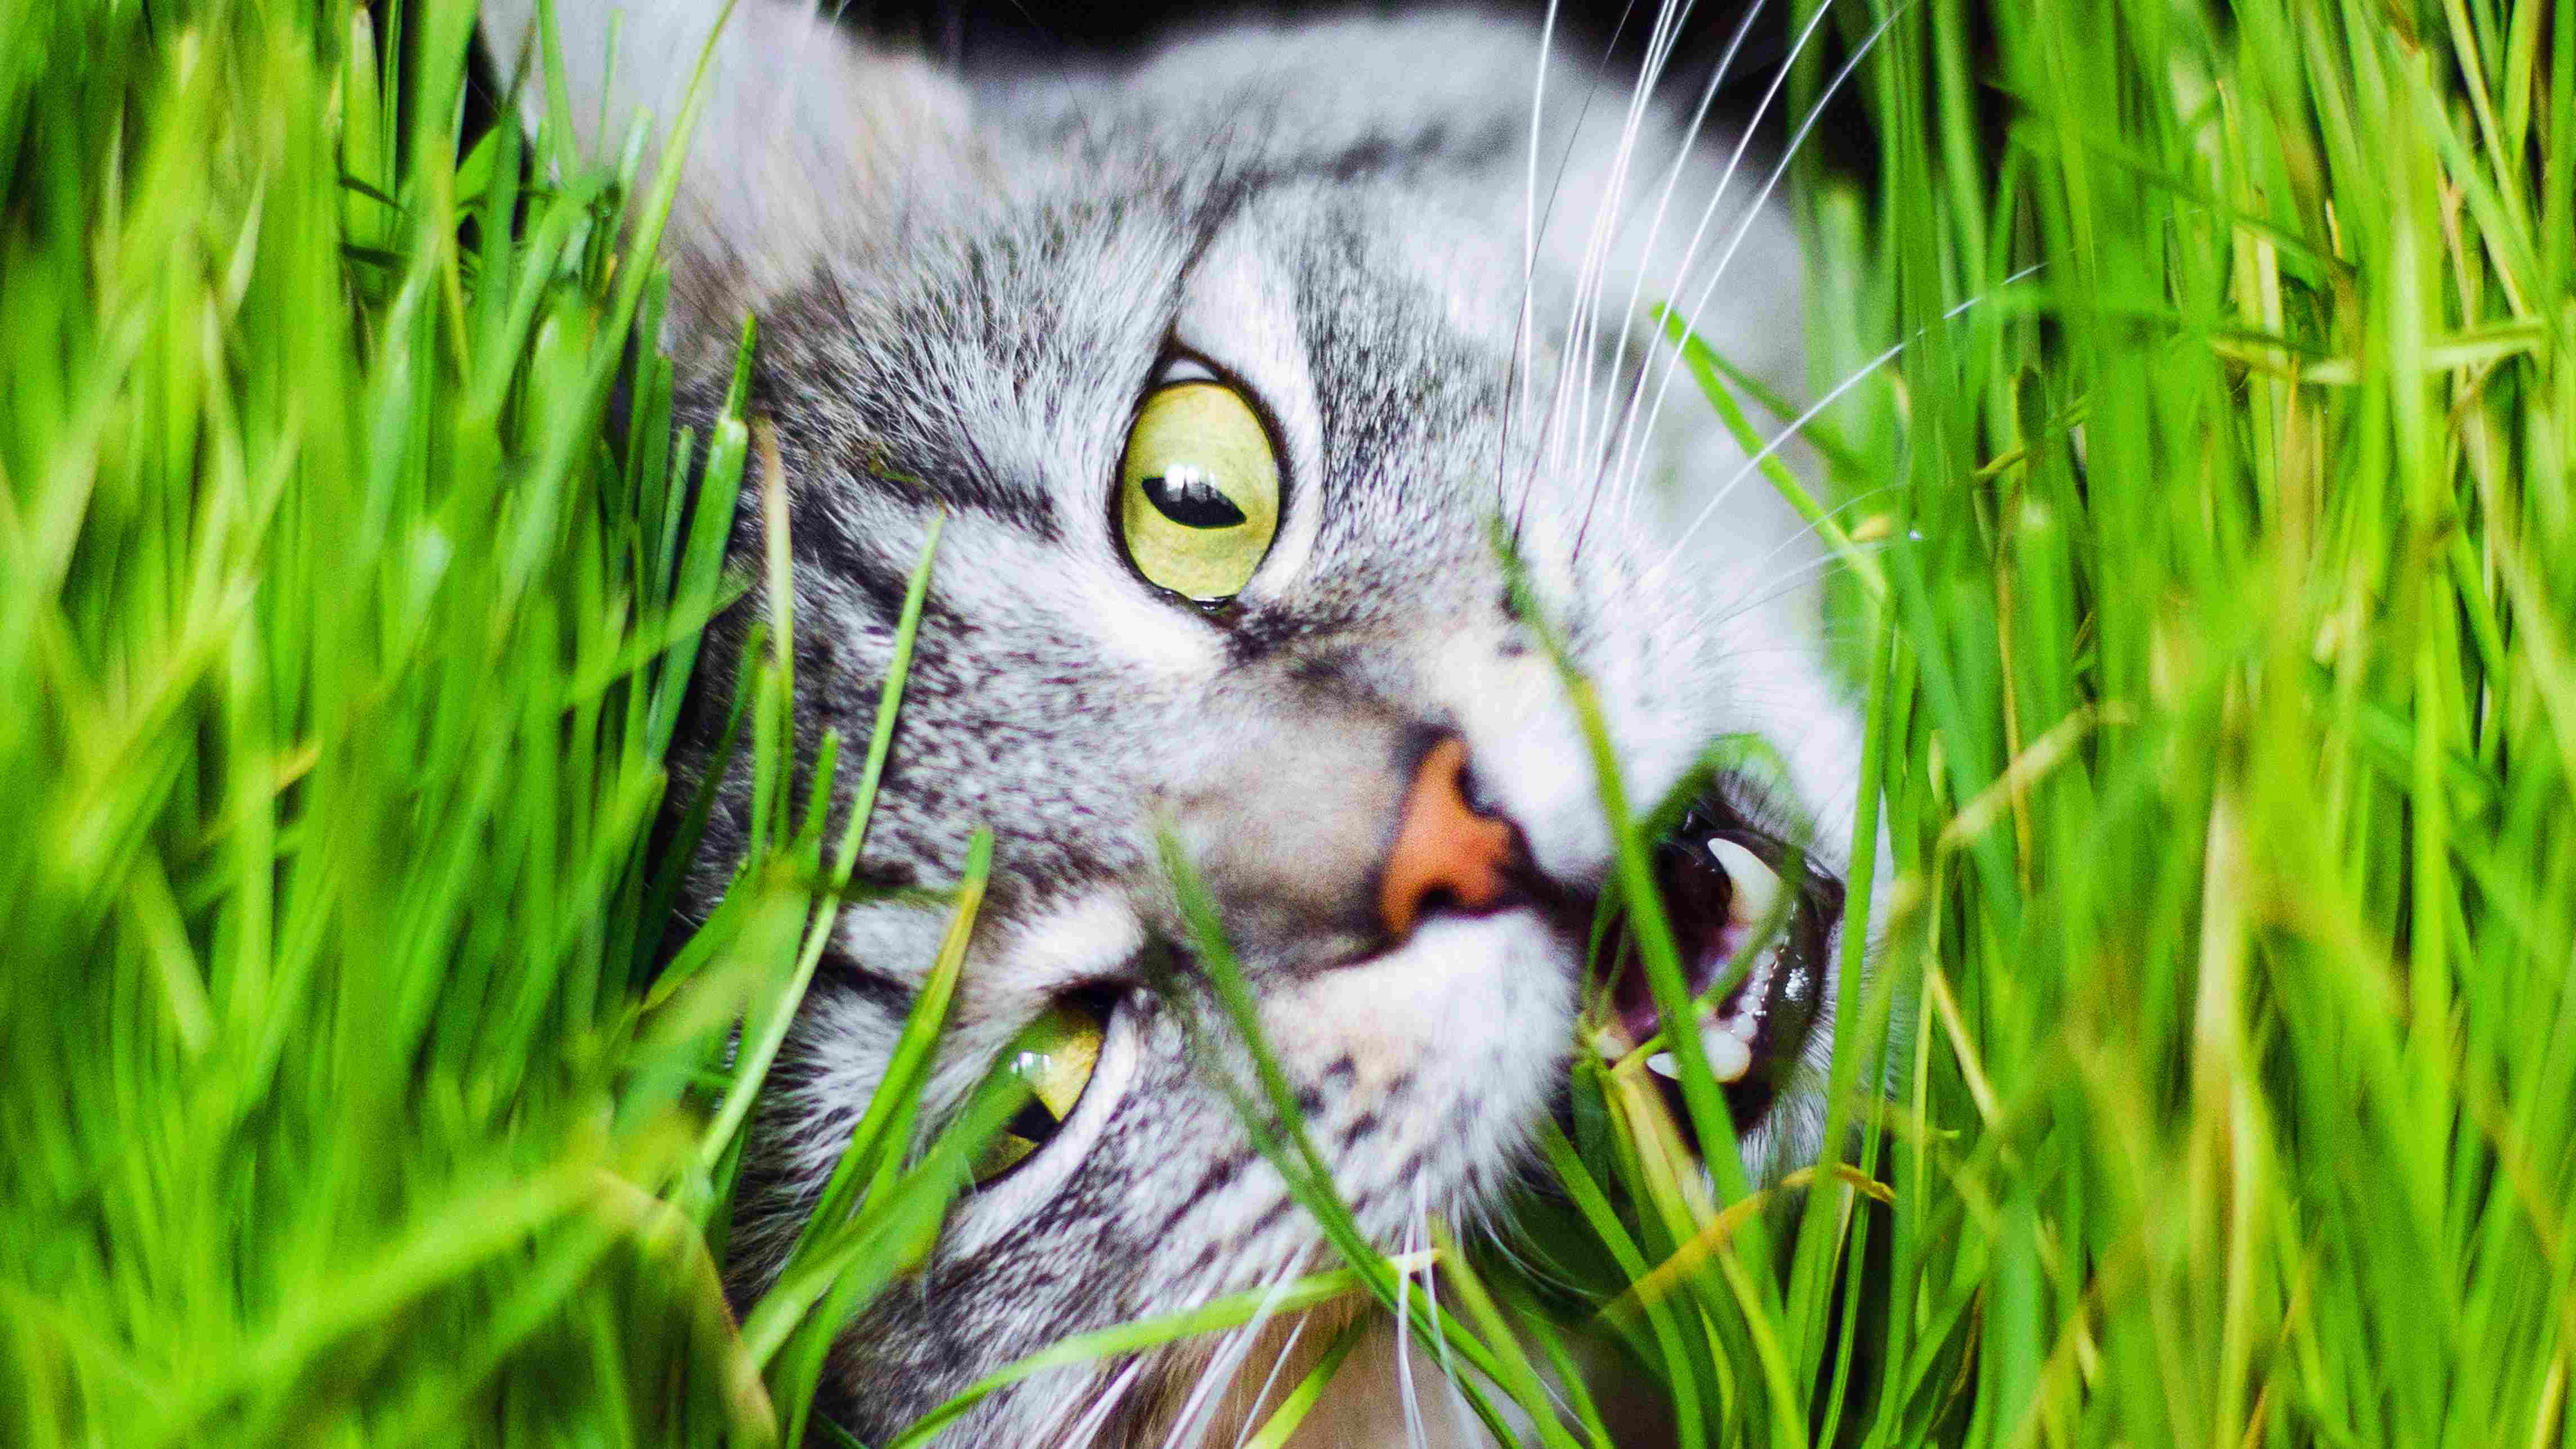 Mystery solved: Why do cats eat grass even when it makes them sick?